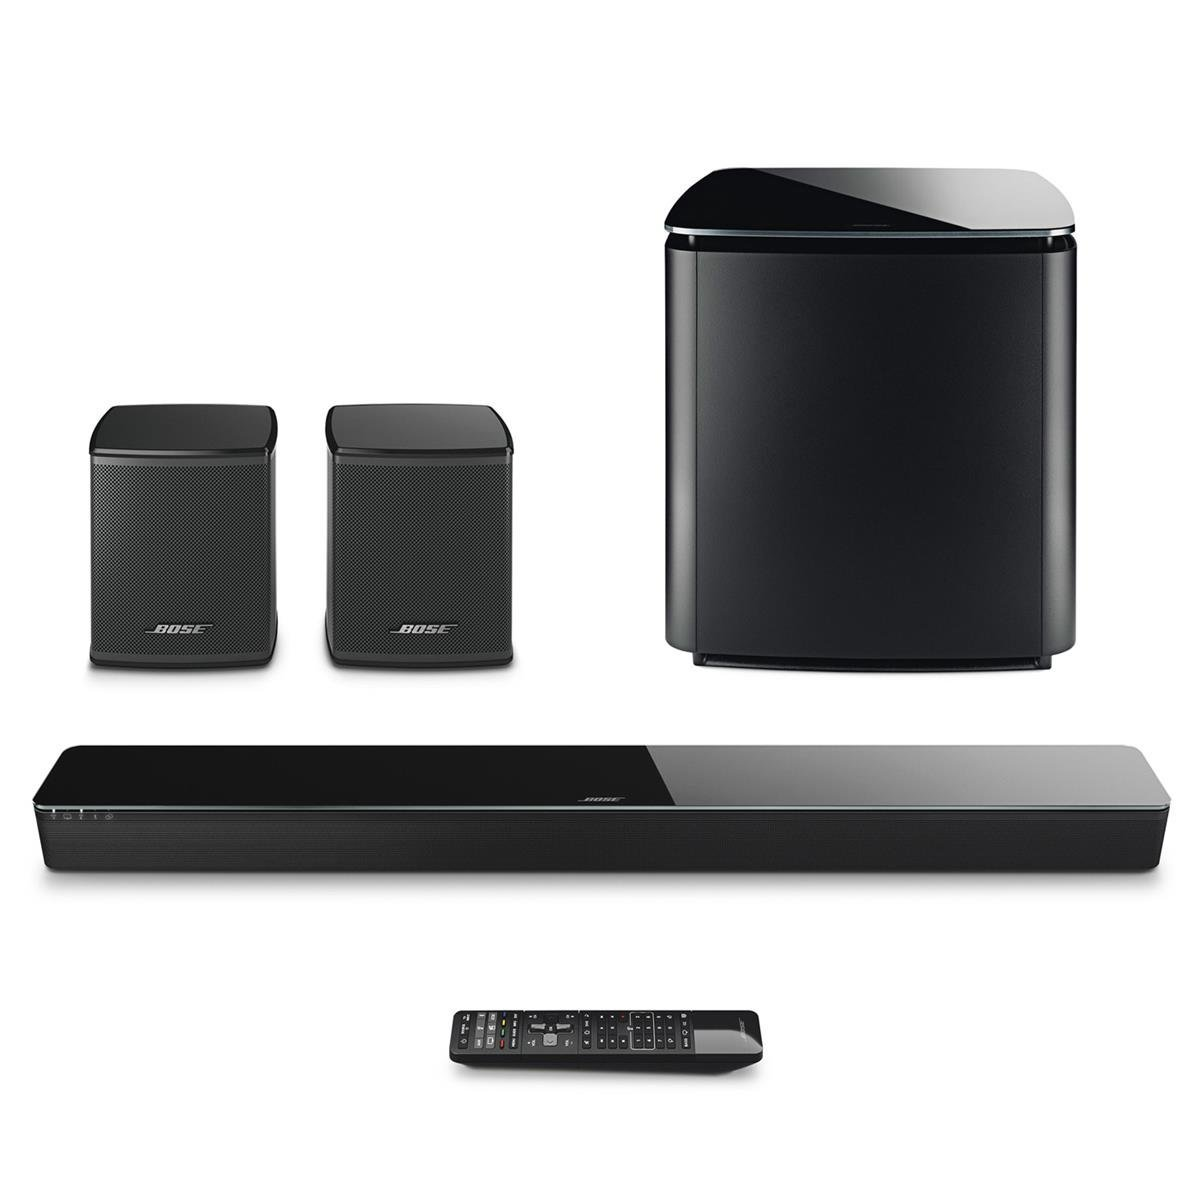 bose soundtouch 300 soundbar with bose acoustimass 300 wireless bass module subwoofer and bose. Black Bedroom Furniture Sets. Home Design Ideas